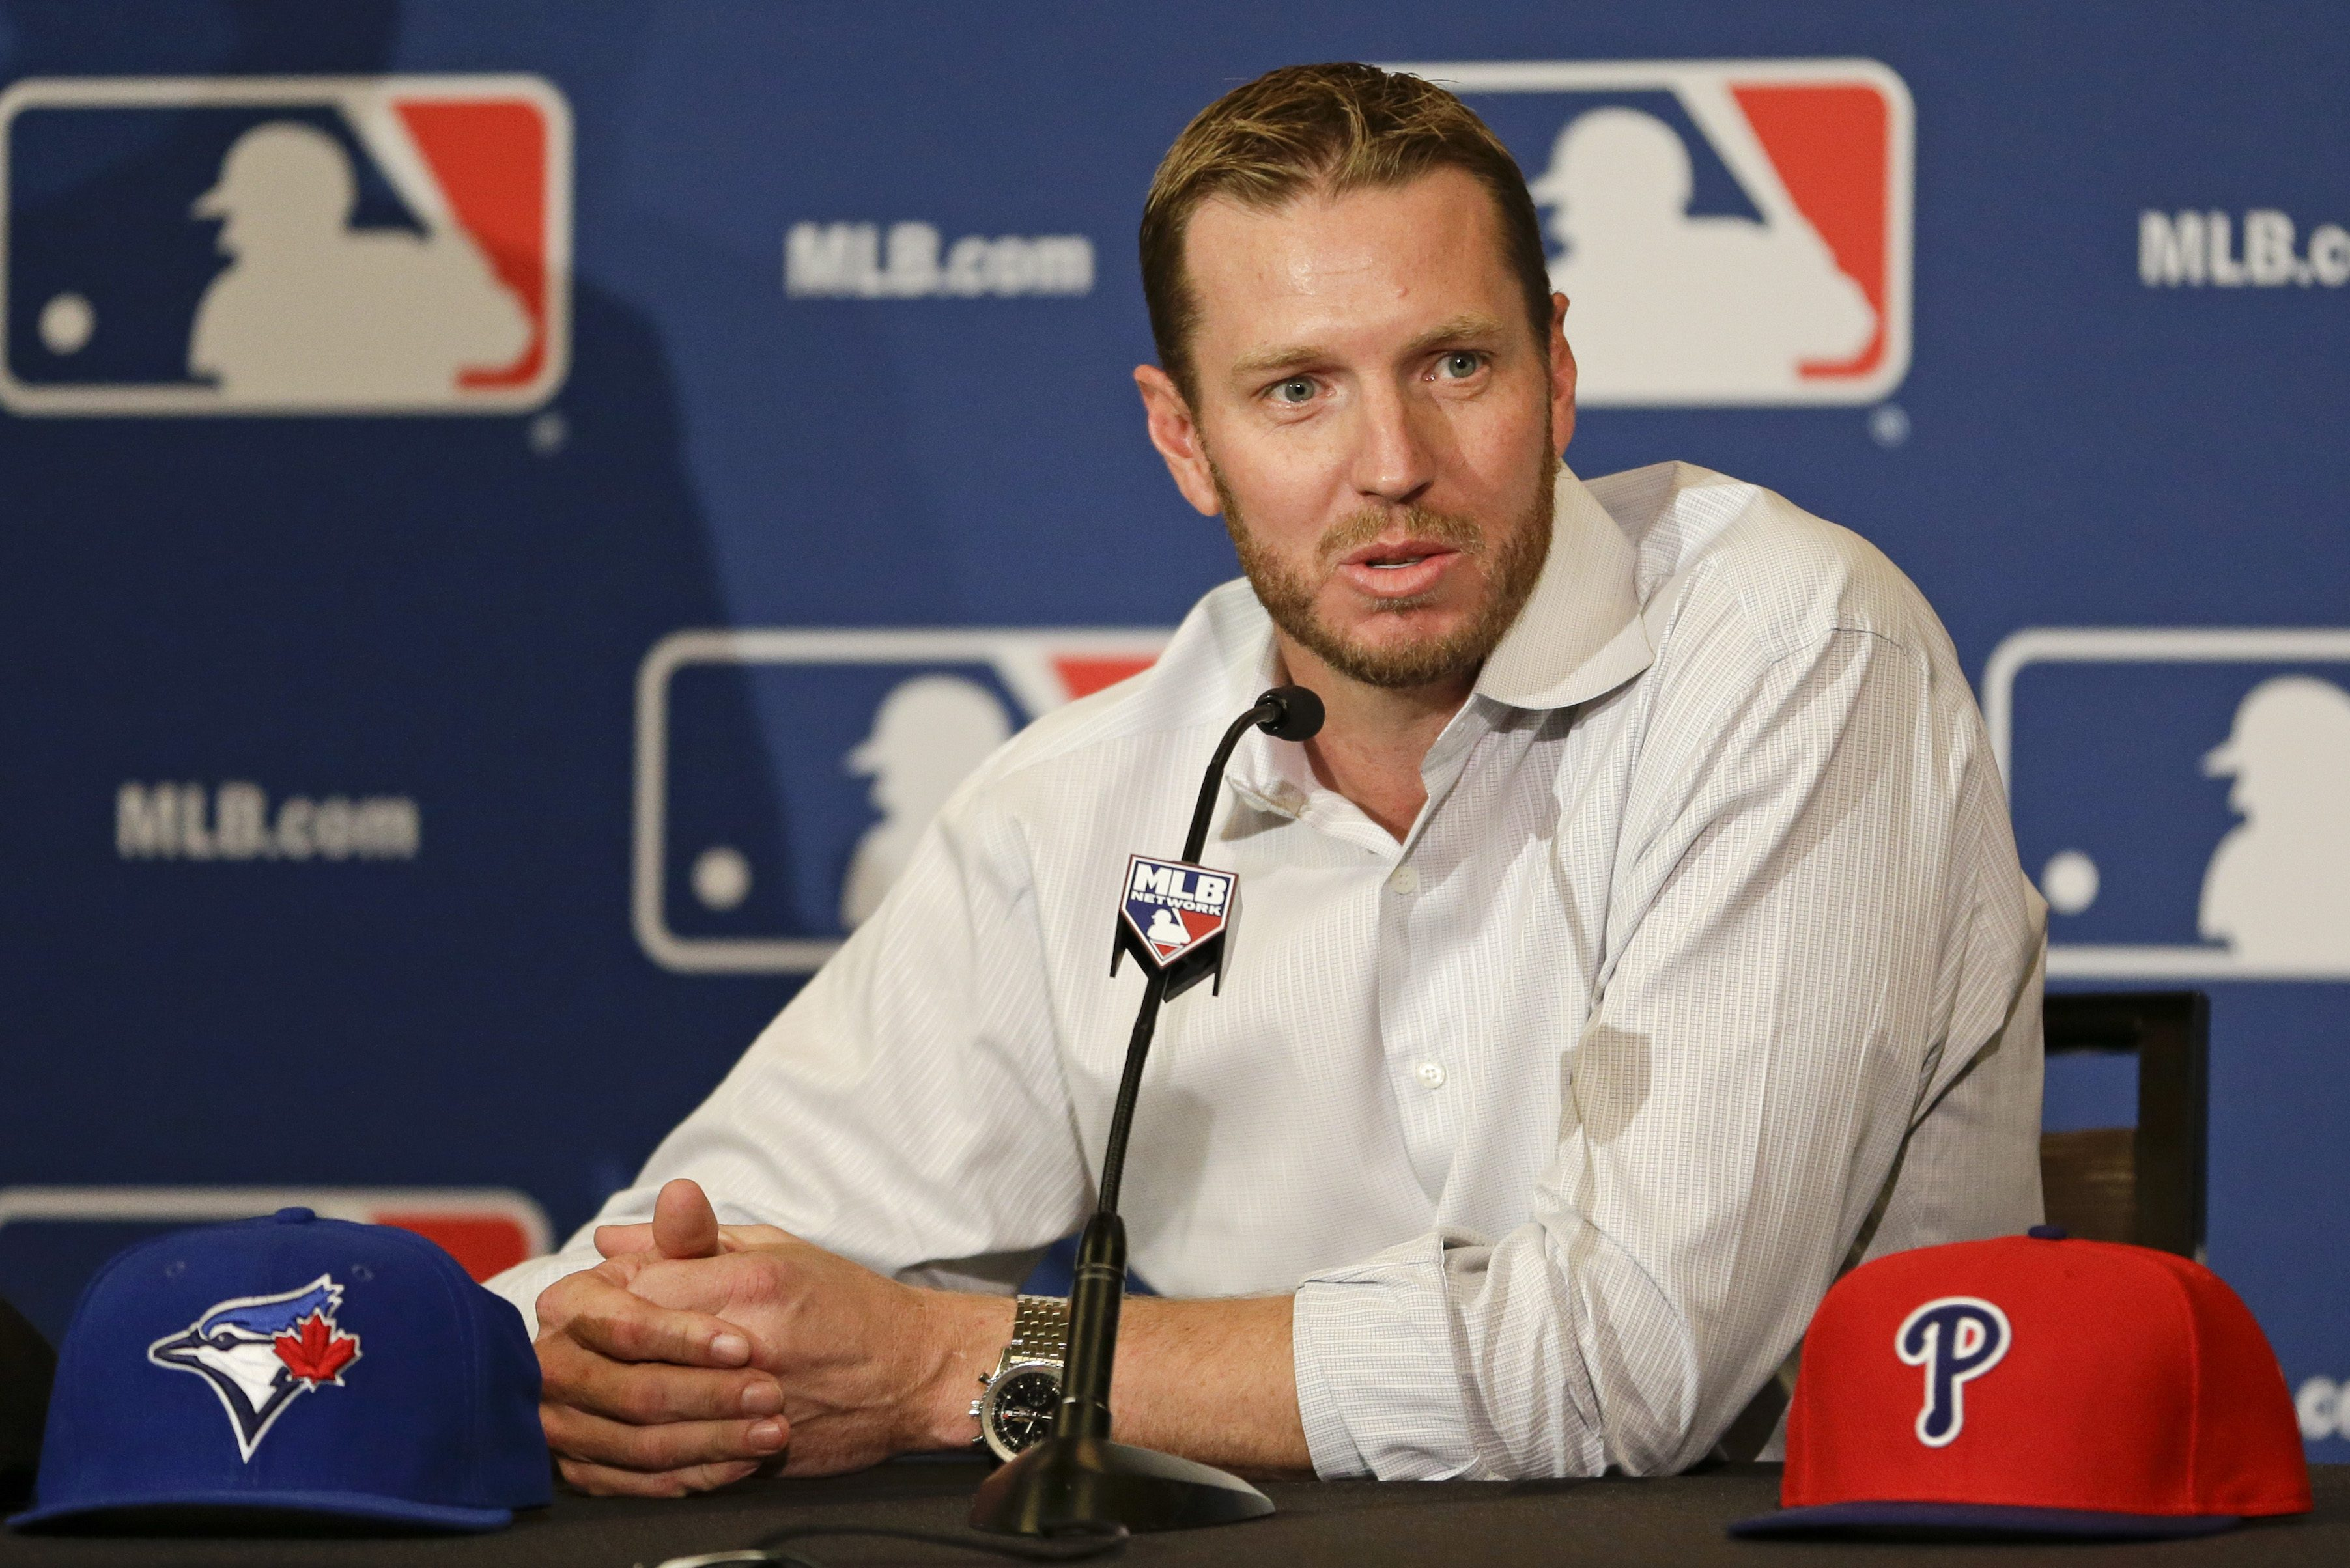 Roy Halladay at his retirement press conference in December 2013.